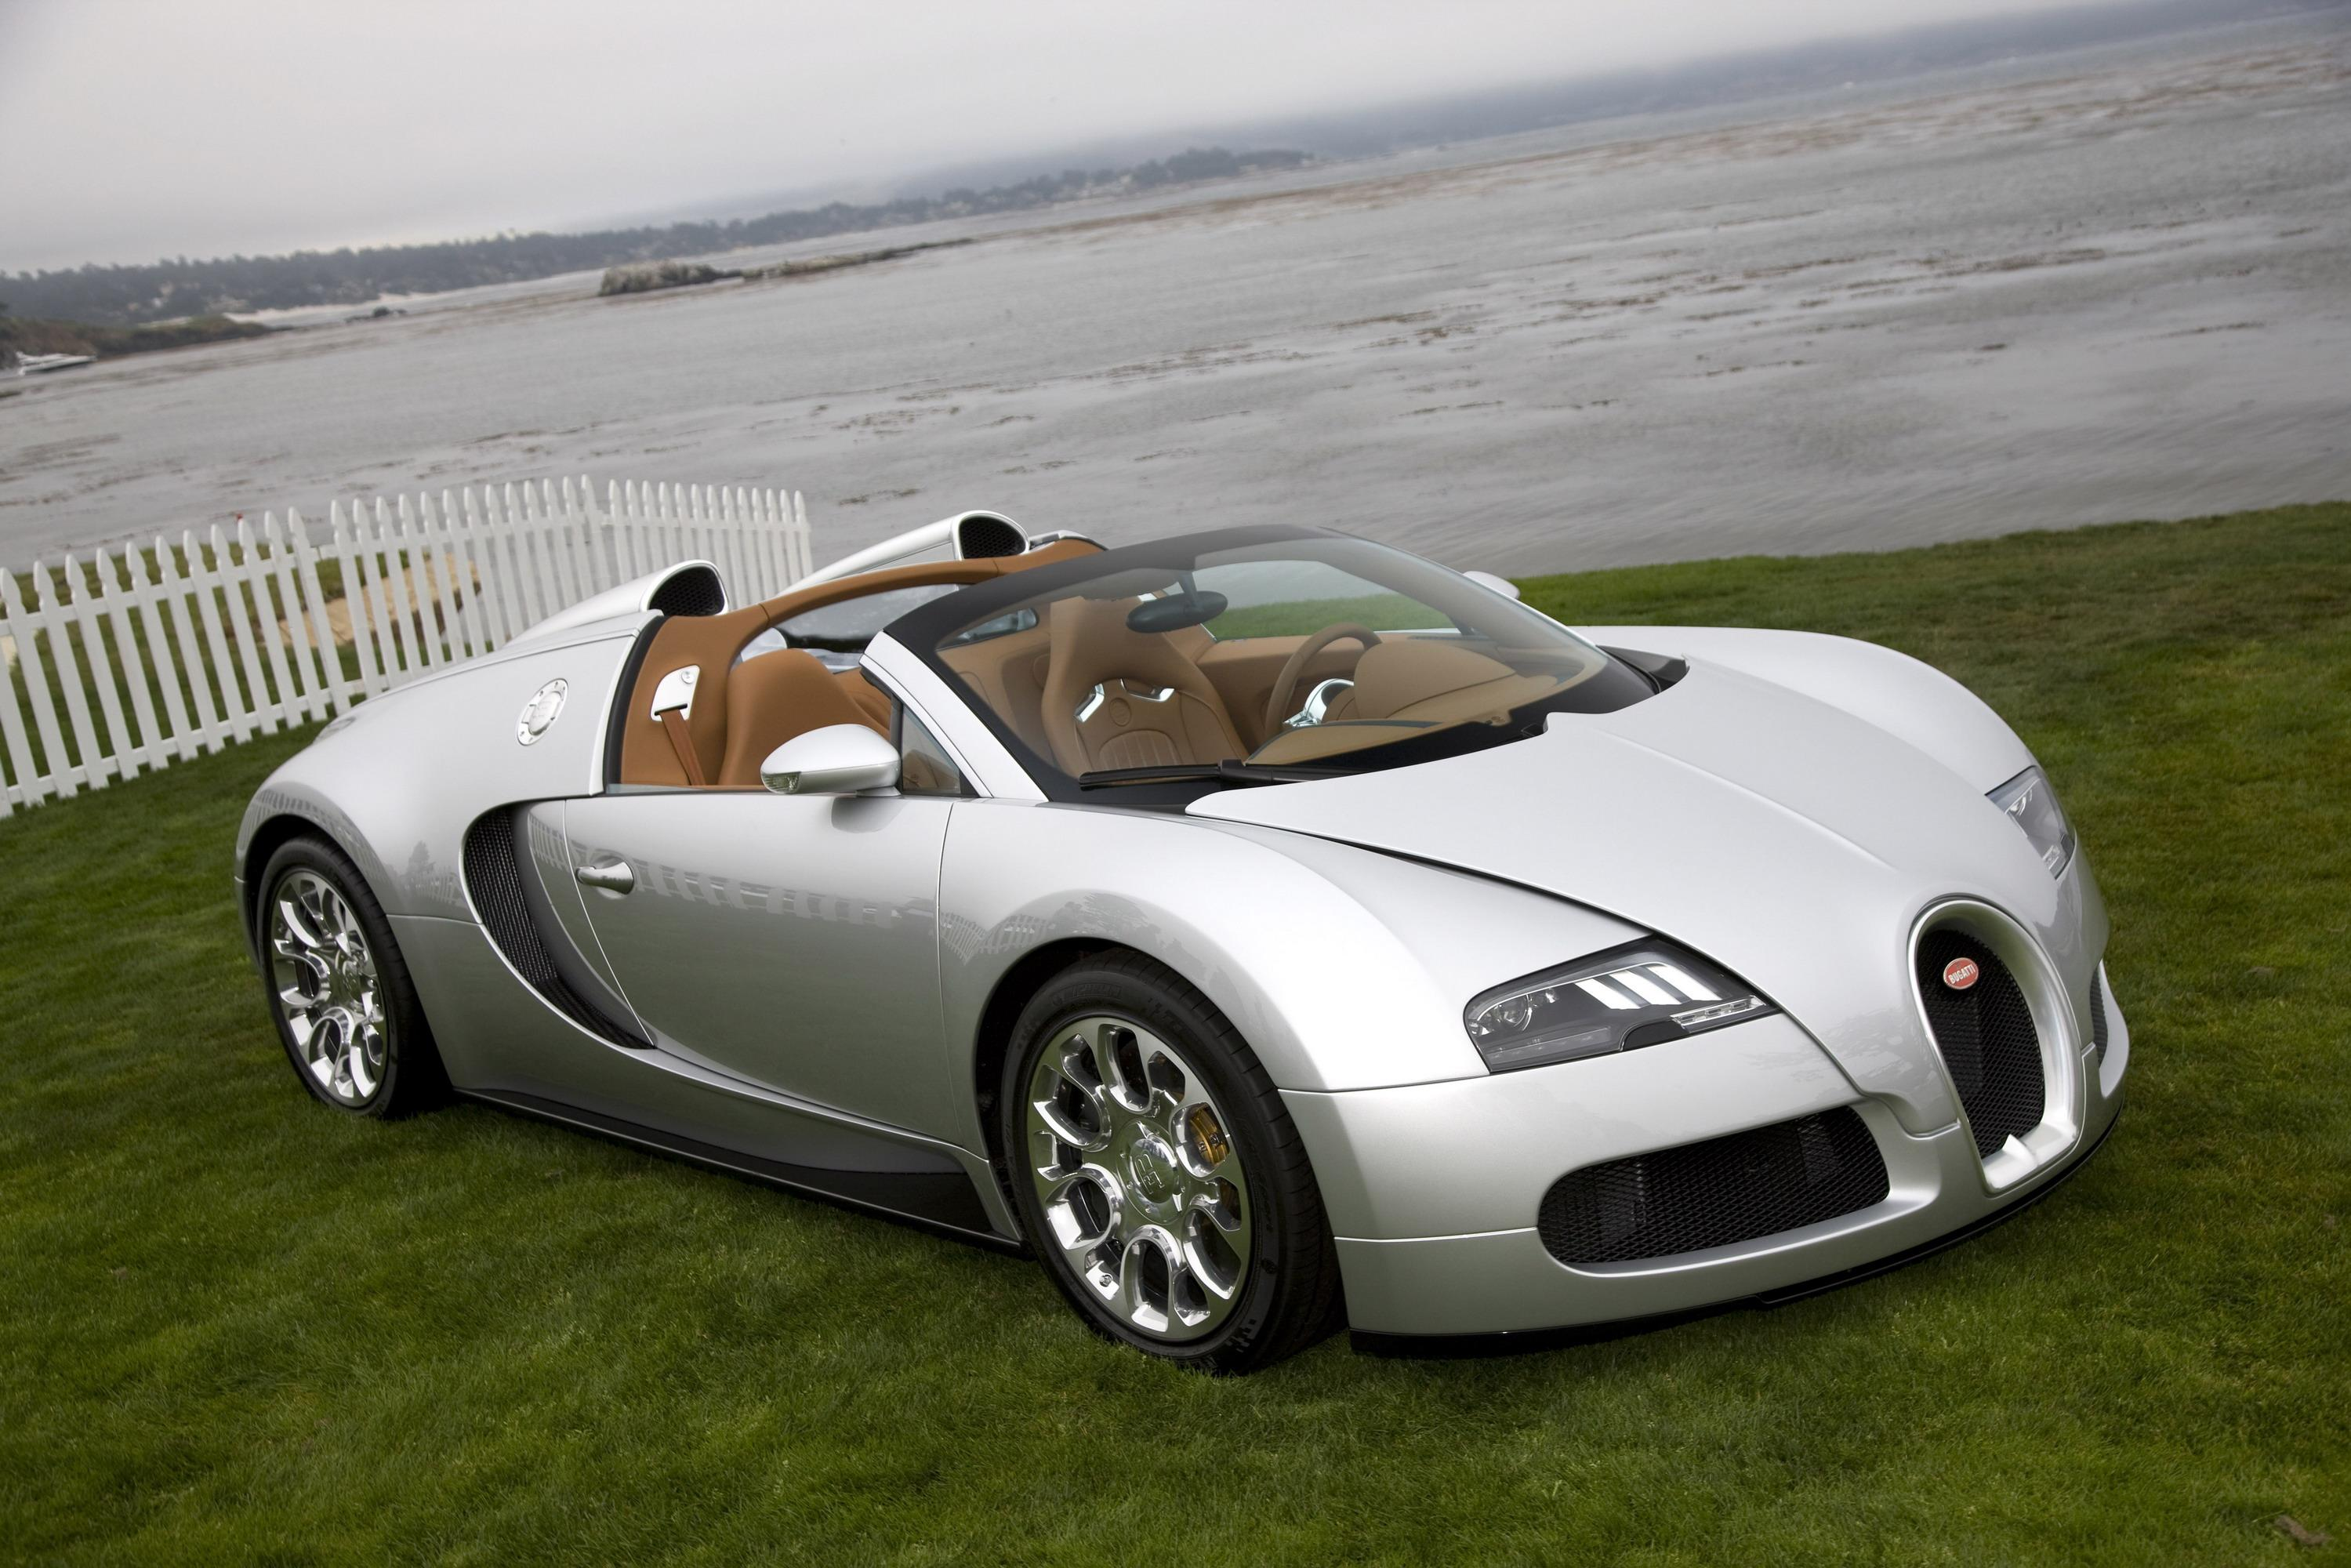 bugatti veyron 16 4 grand sport pricing announced news. Black Bedroom Furniture Sets. Home Design Ideas